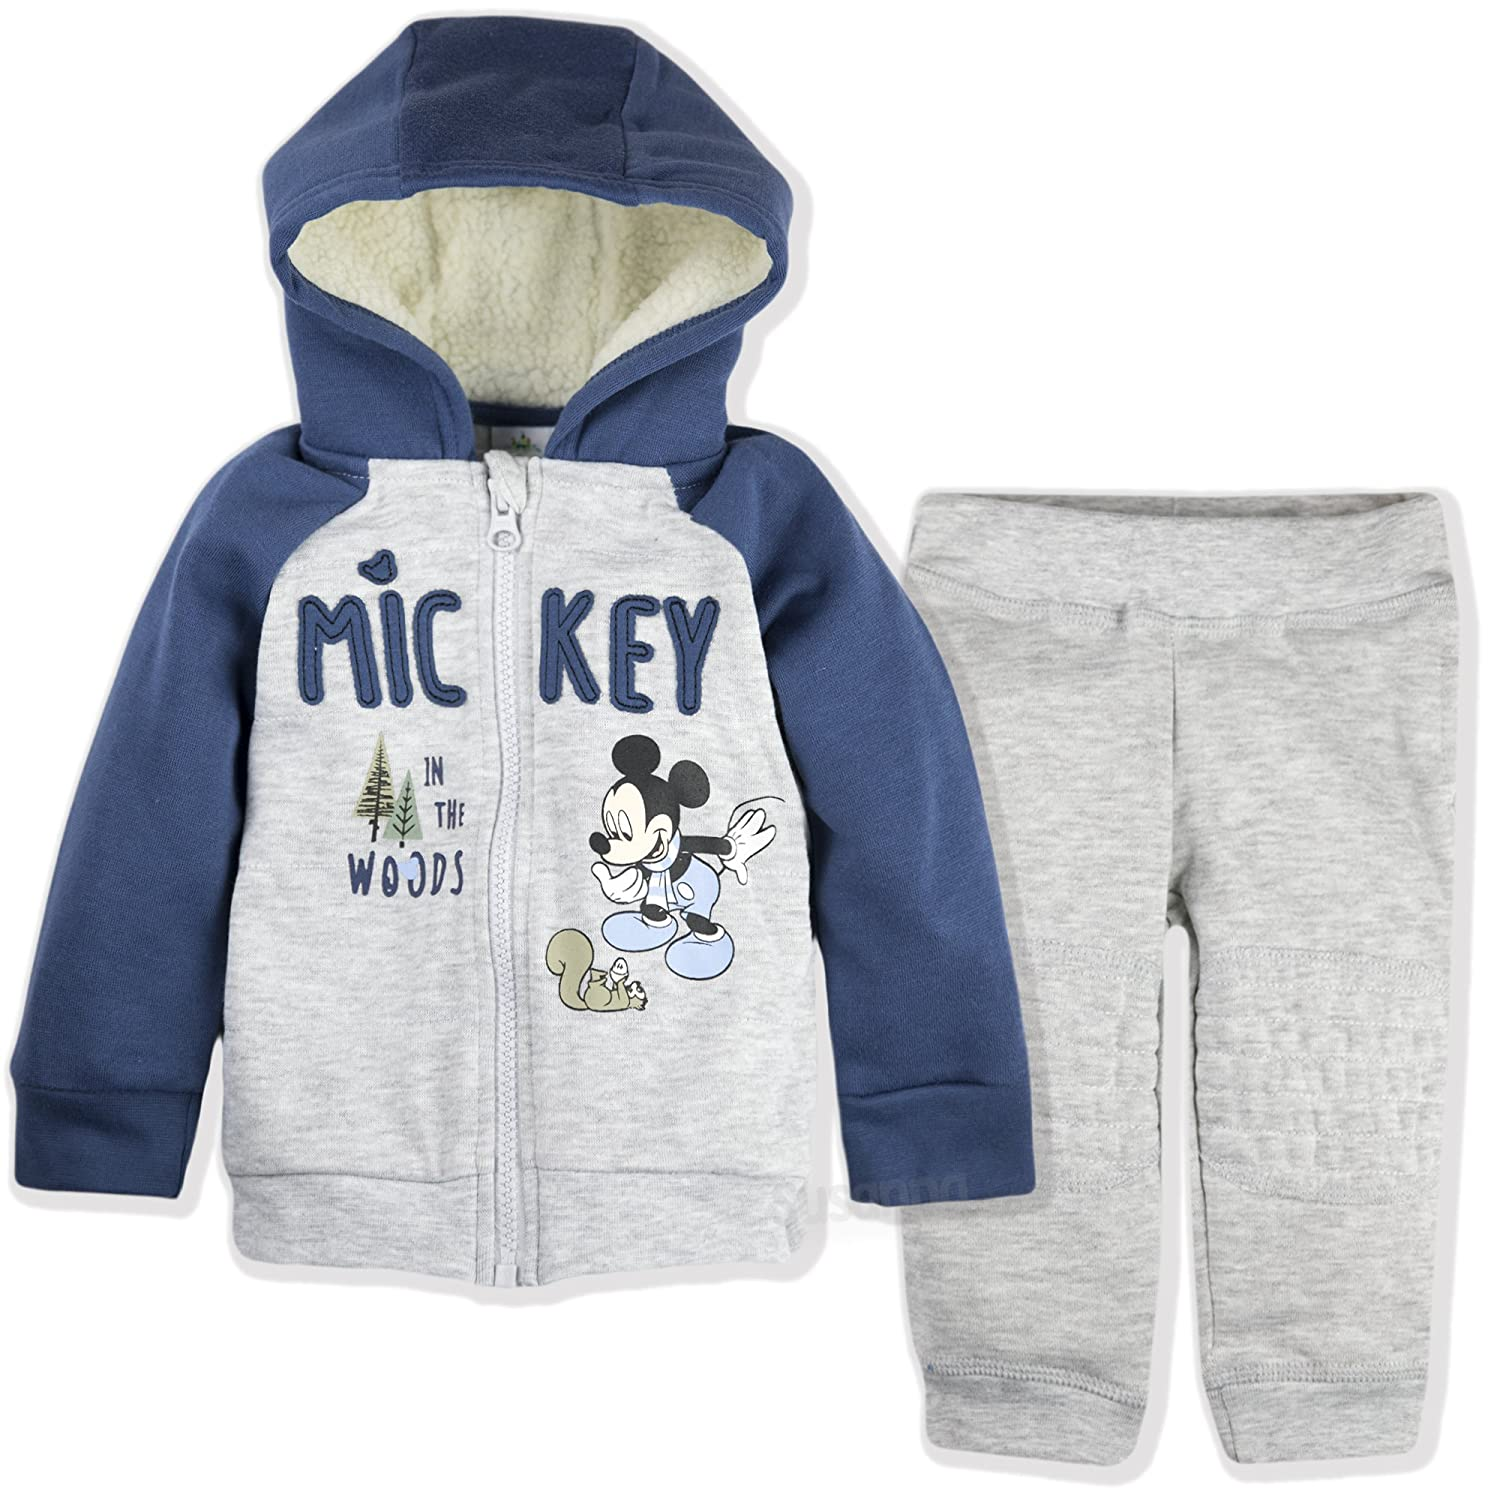 Disney Mickey Mouse Baby Boys Clothing Outfit Tracksuit Set Joggers Hoodie Warm 9-36 Months - New 2018